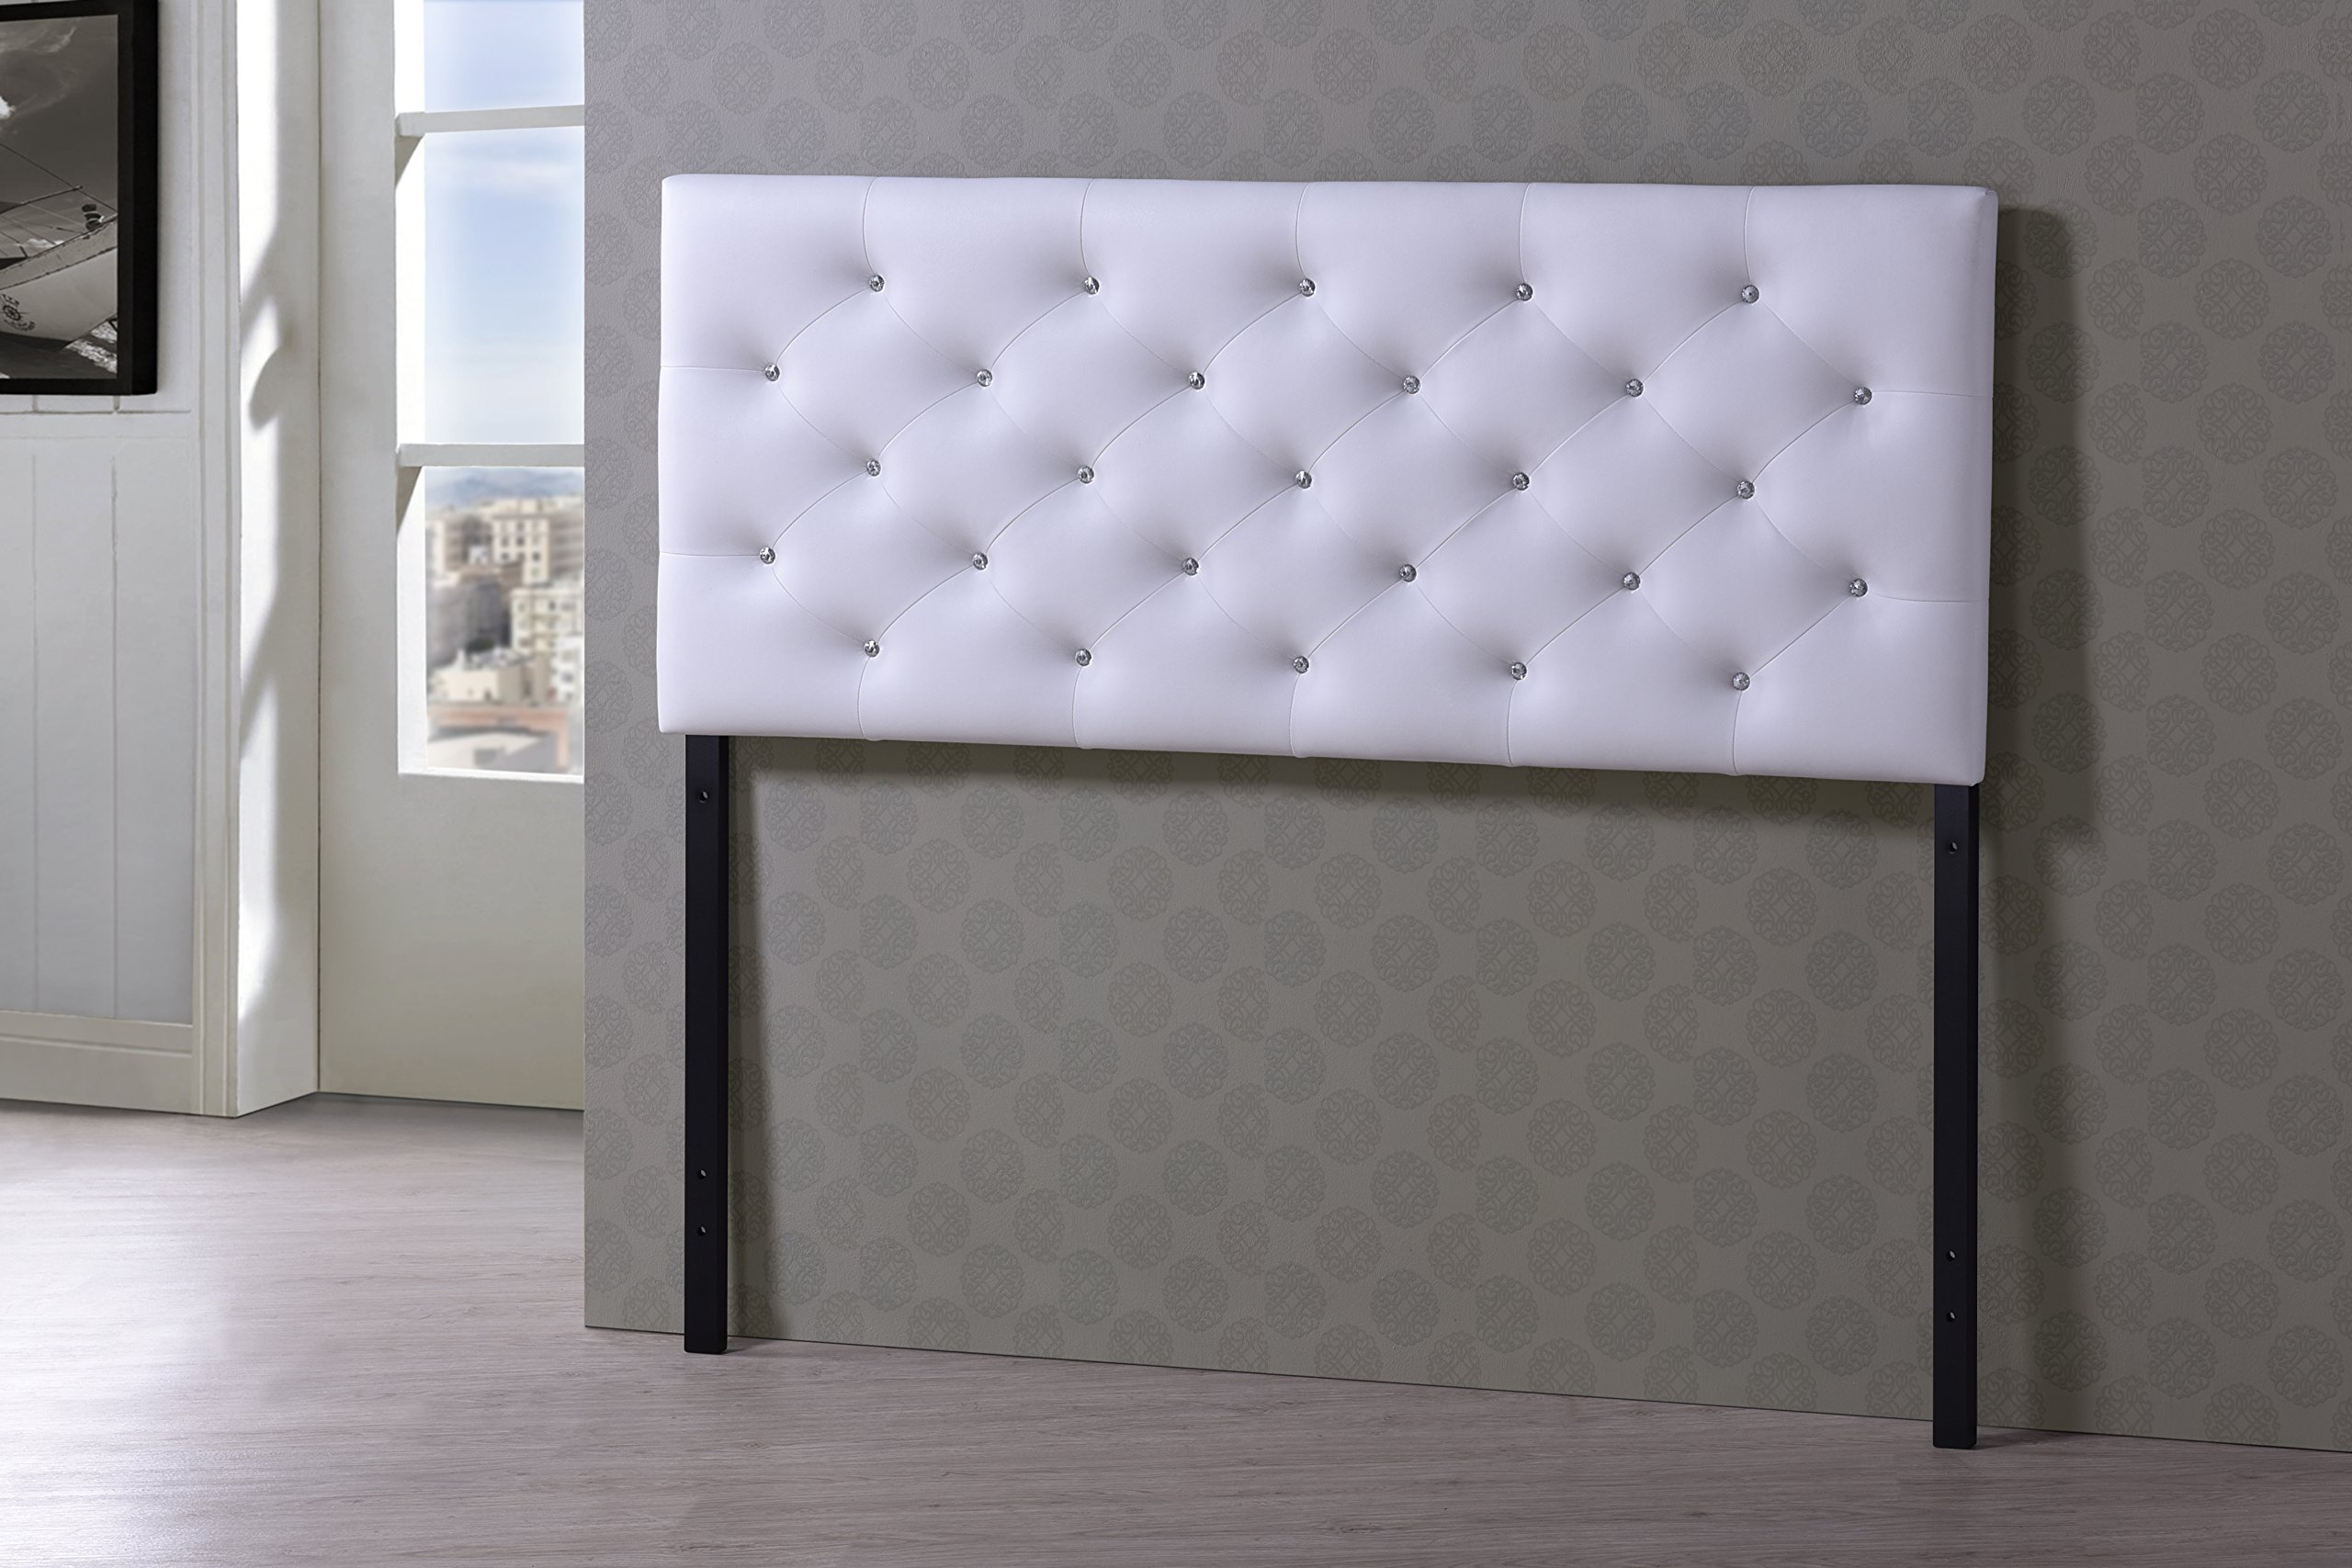 Baxton Studio Viviana Modern & Contemporary Faux Leather Upholstered Button Tufted Headboard, Queen, White by Baxton Studio